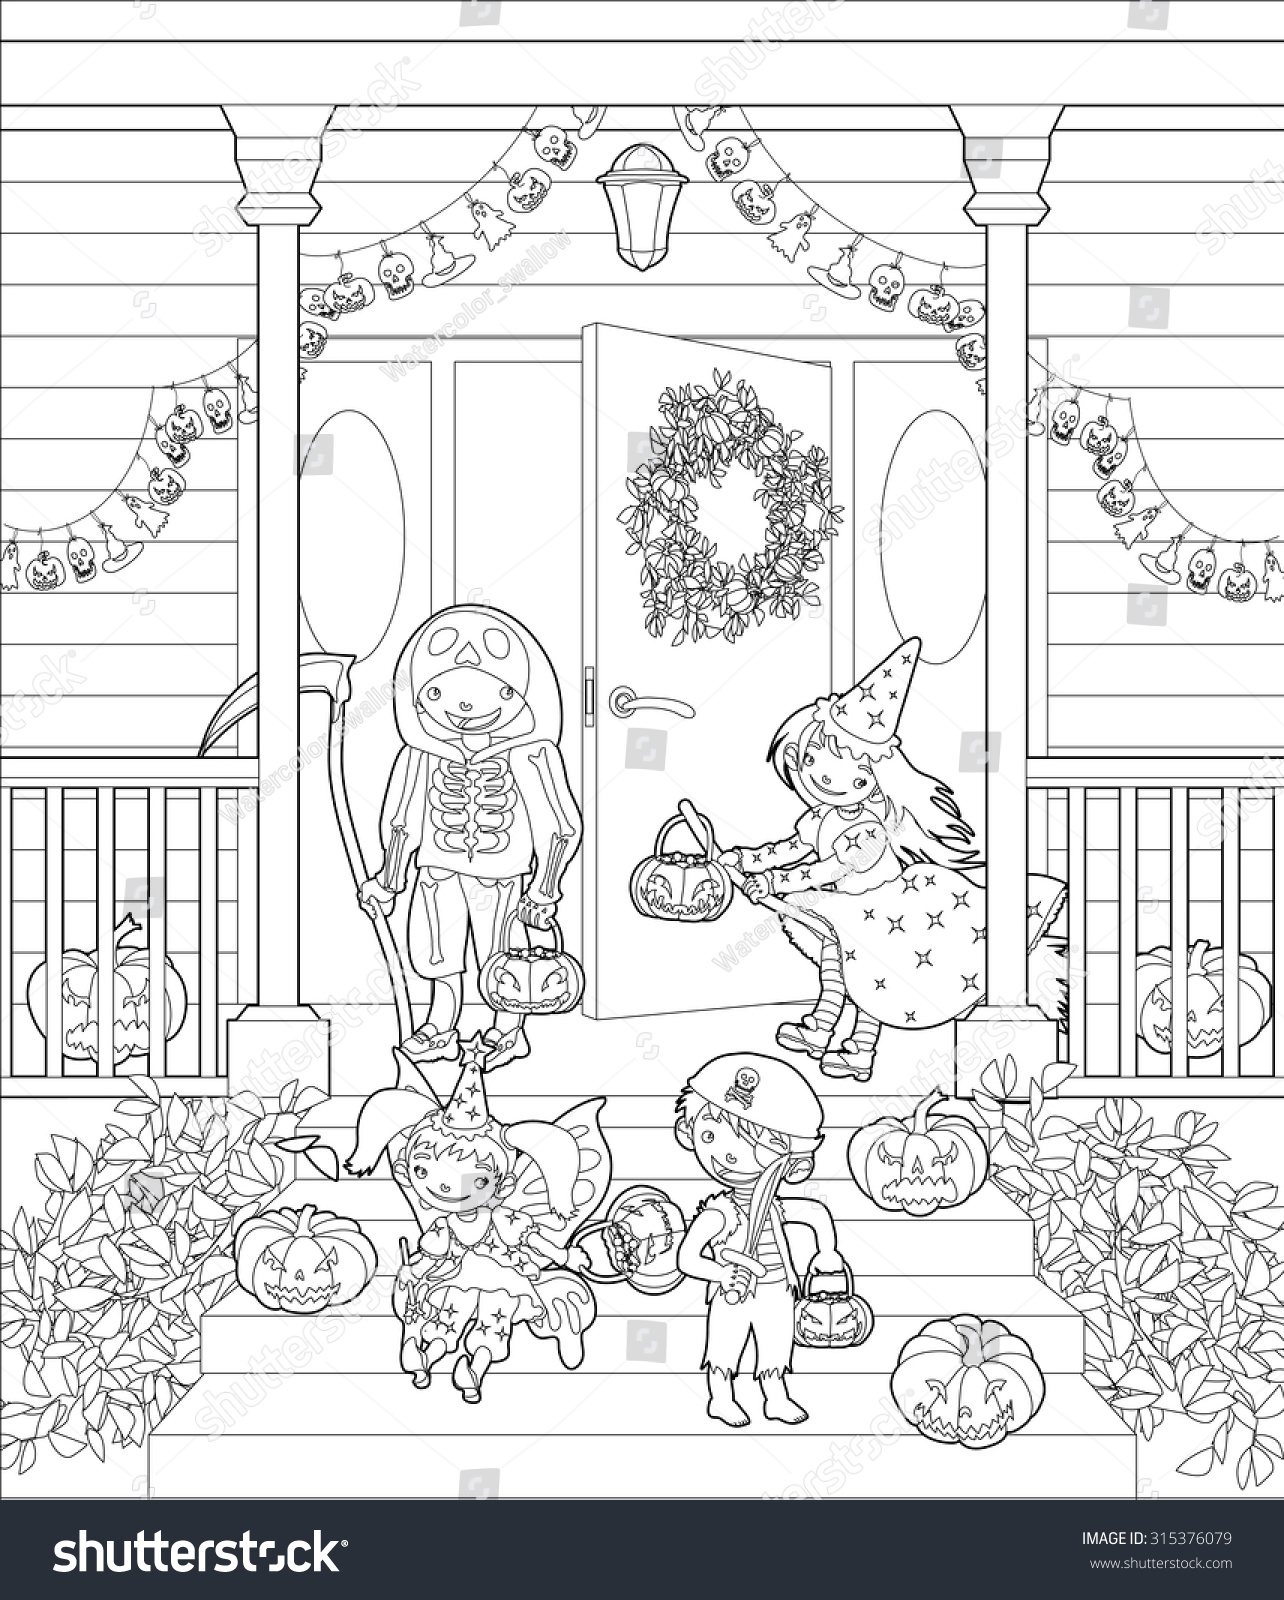 100 halloween costume coloring pages free printable witch